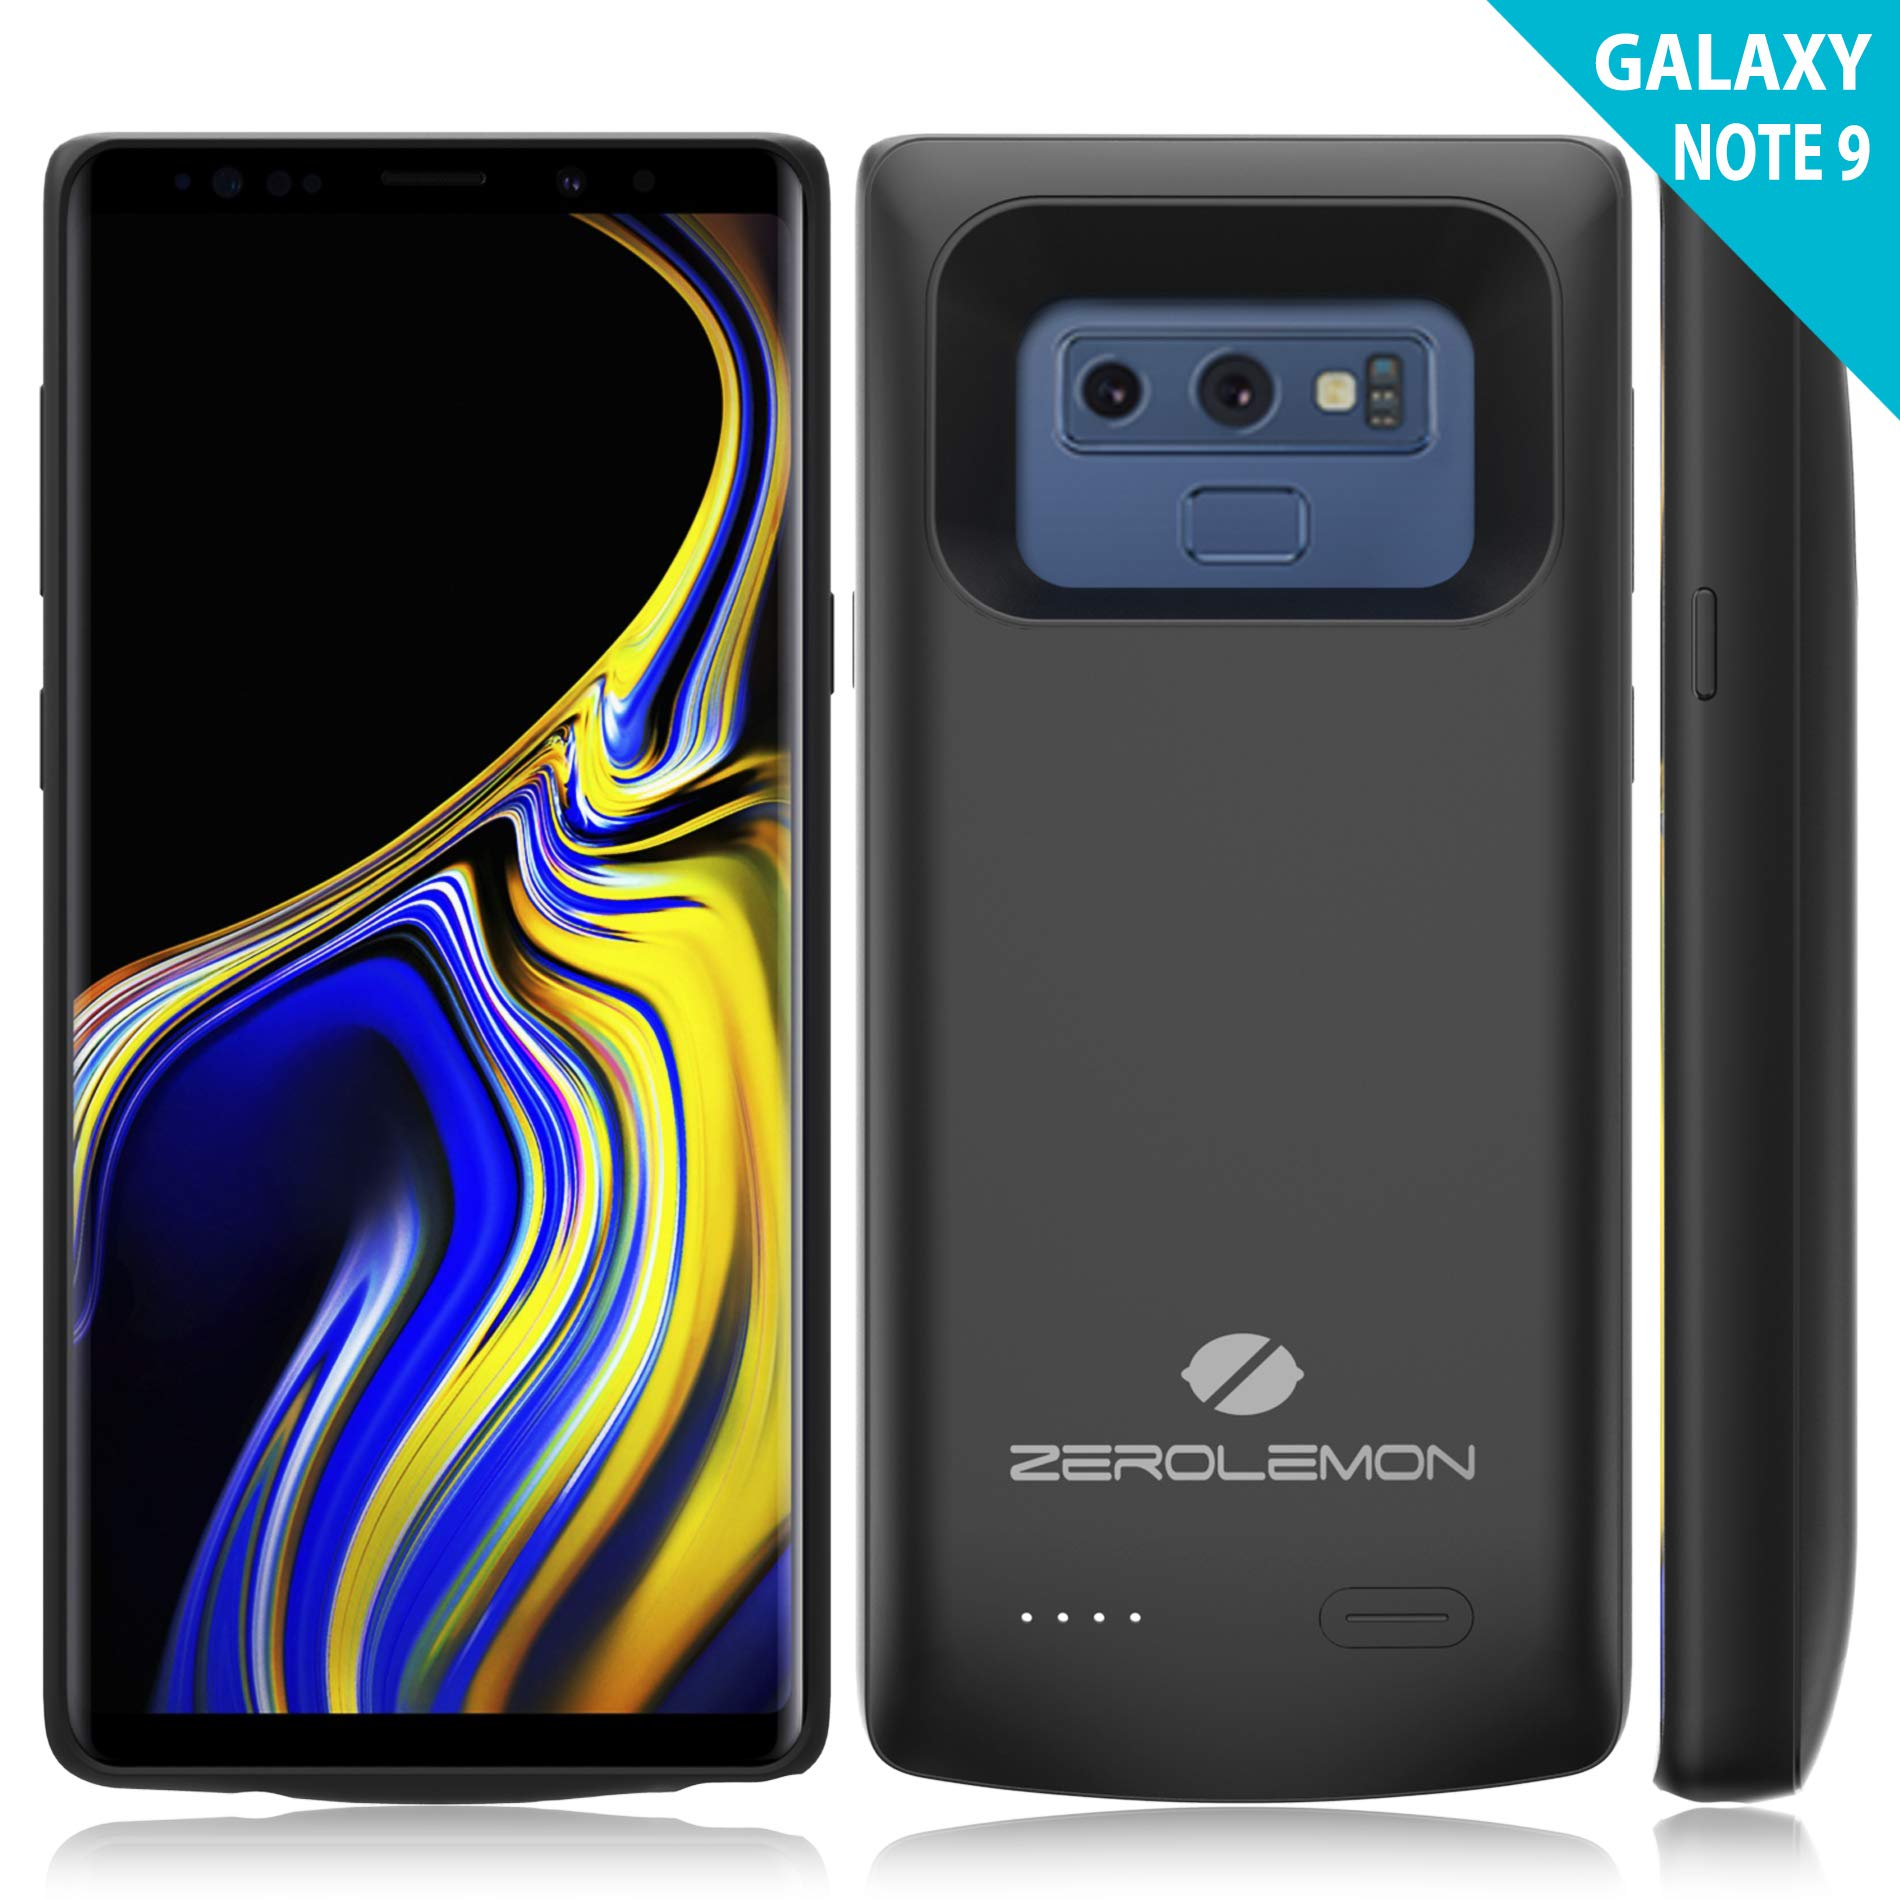 Samsung Galaxy Note 9 Battery Case, ZeroLemon Slim Power Galaxy Note 9 5000mAh Extended Battery with Soft TPU Full Edge Protection Case - Black